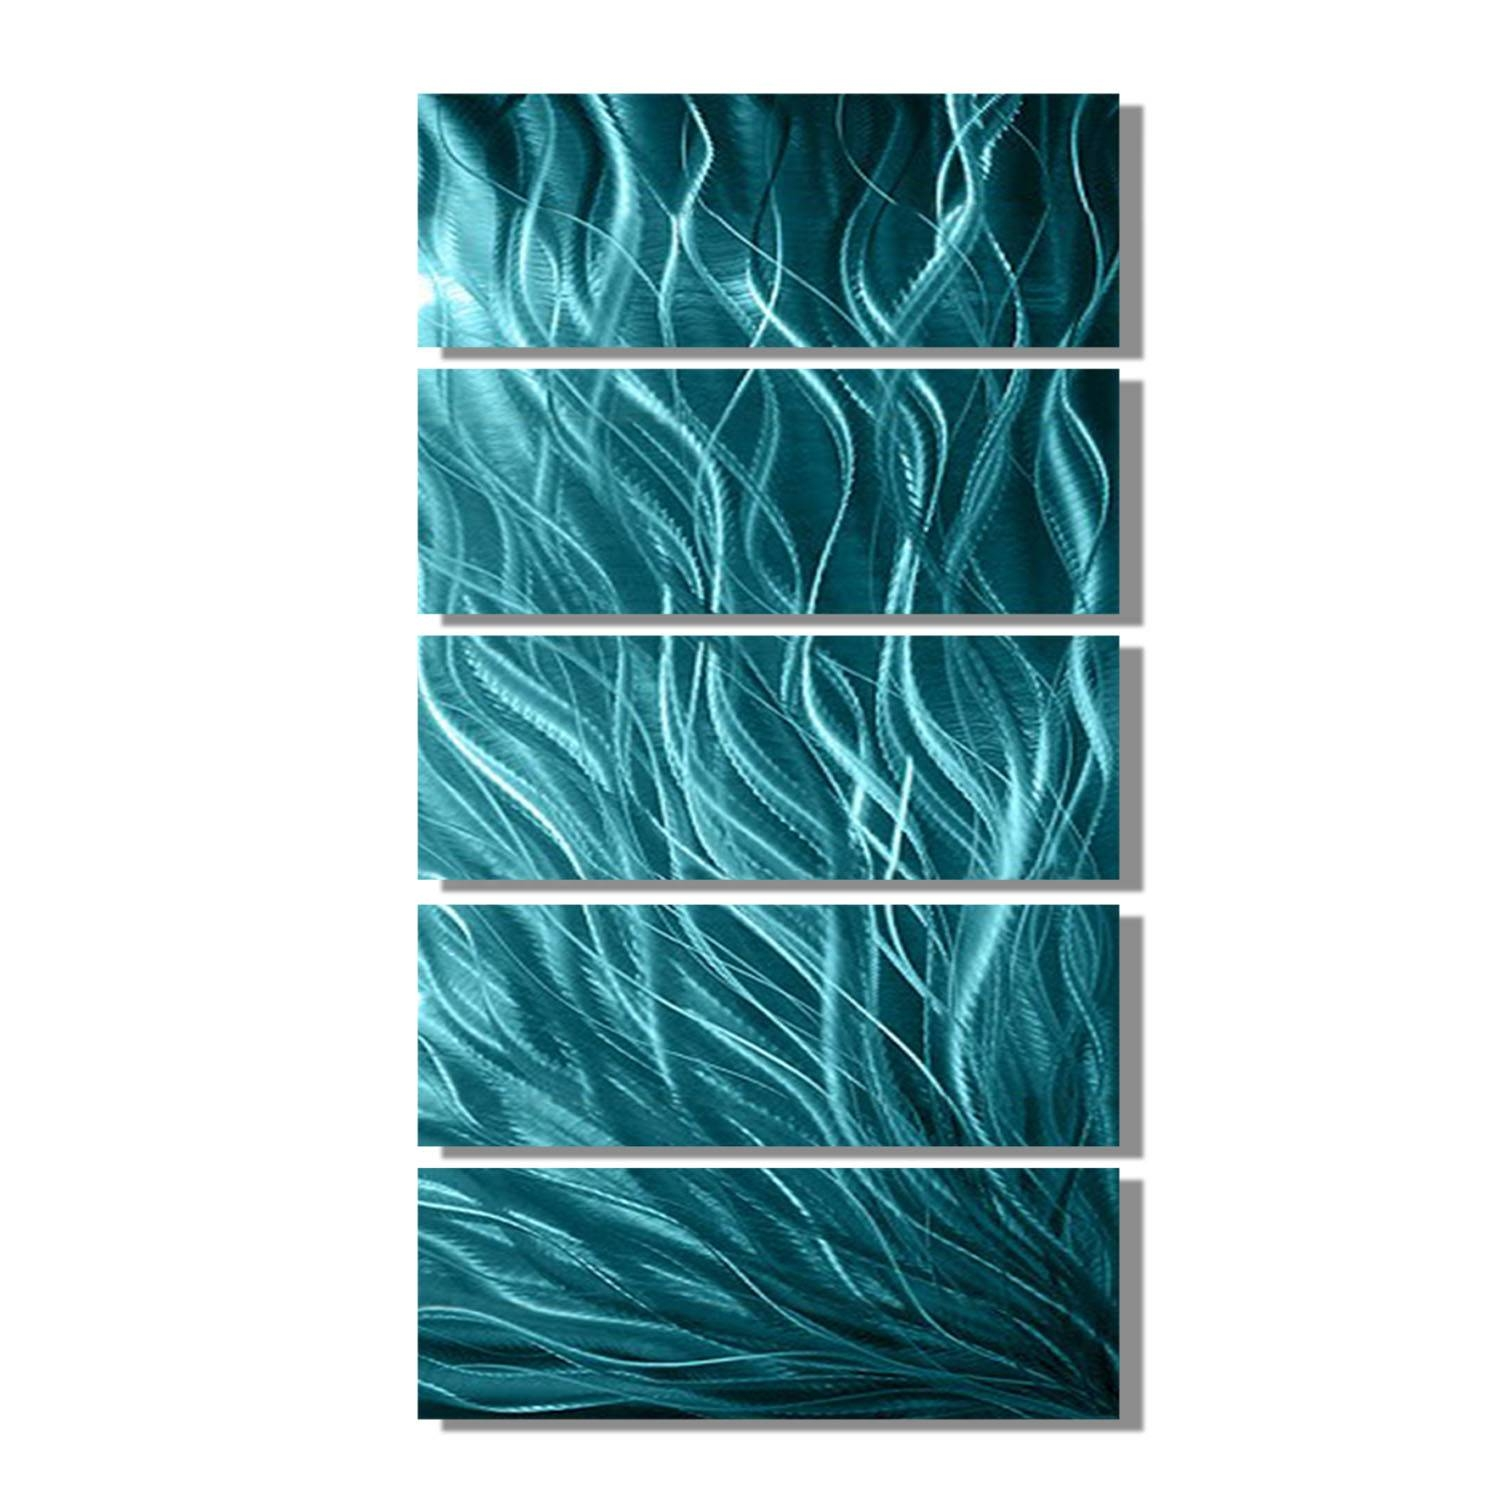 Echo 3 Blues Abstract Metal Wall Art Contemporary Modern Decor Intended For Most Recent Heron Metal Wall Art (View 15 of 20)